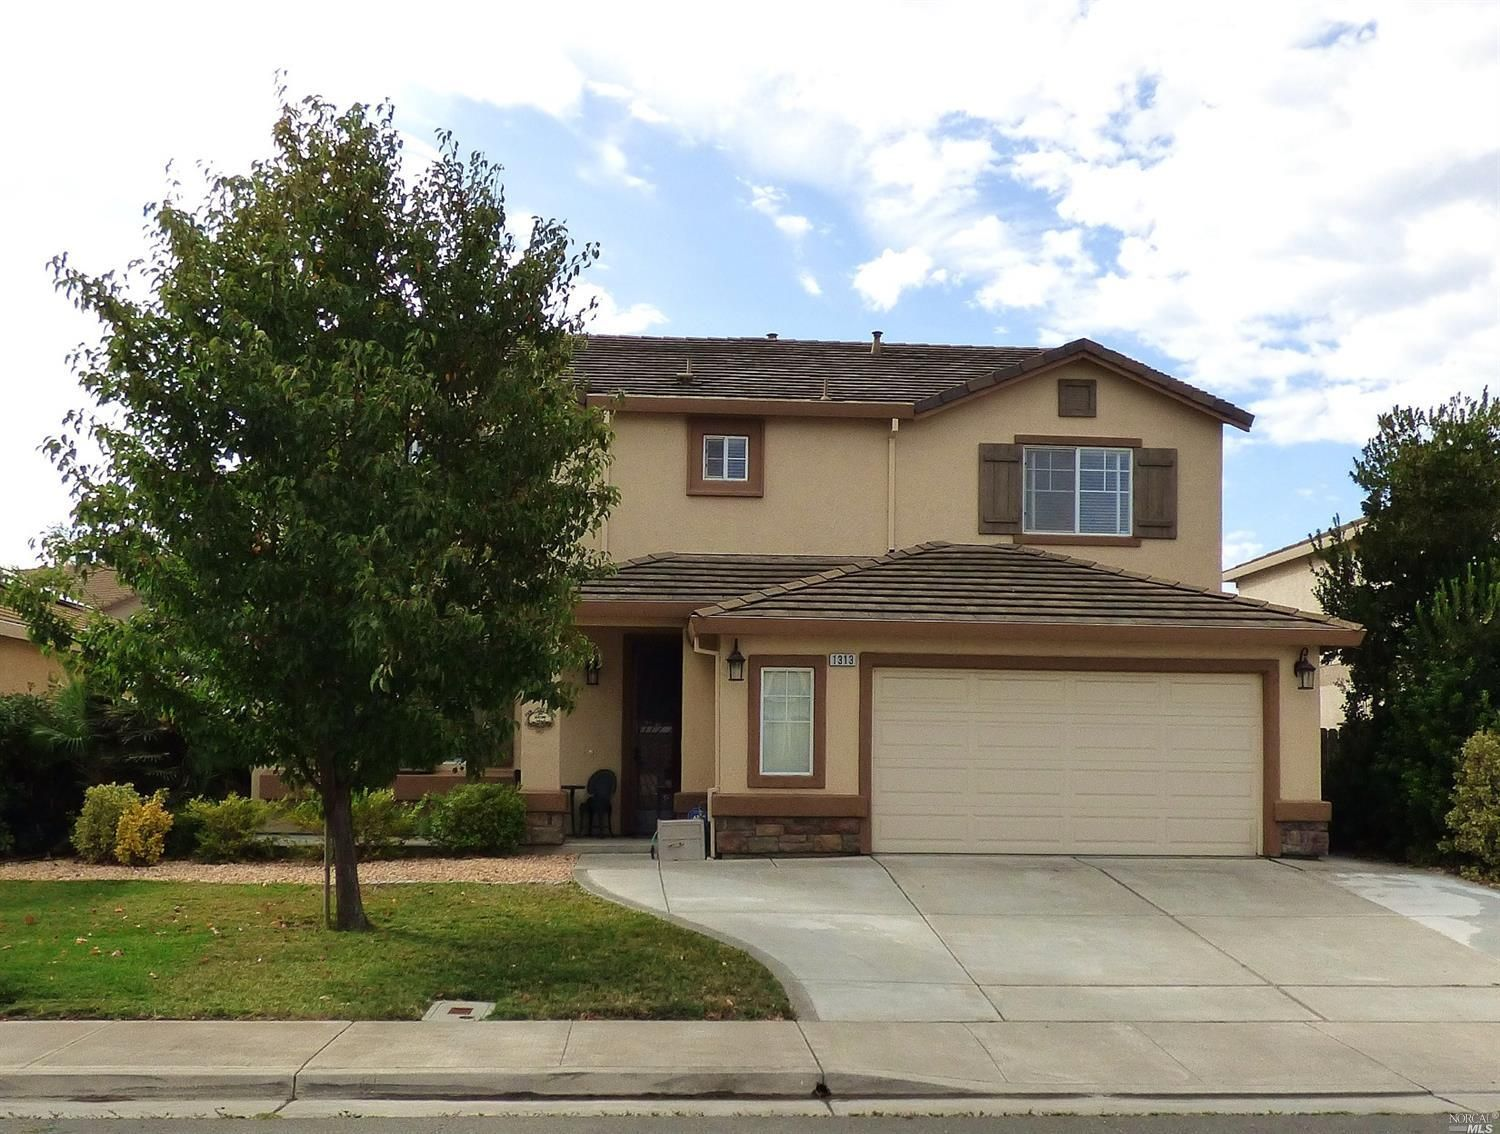 490000 1313 Reeves Ct Suisun City Ca 94585 The Master Bdrm Is Huge The Walk In Closet Is Huge The S In Ground Pools California Homes Waterfront Restaurant